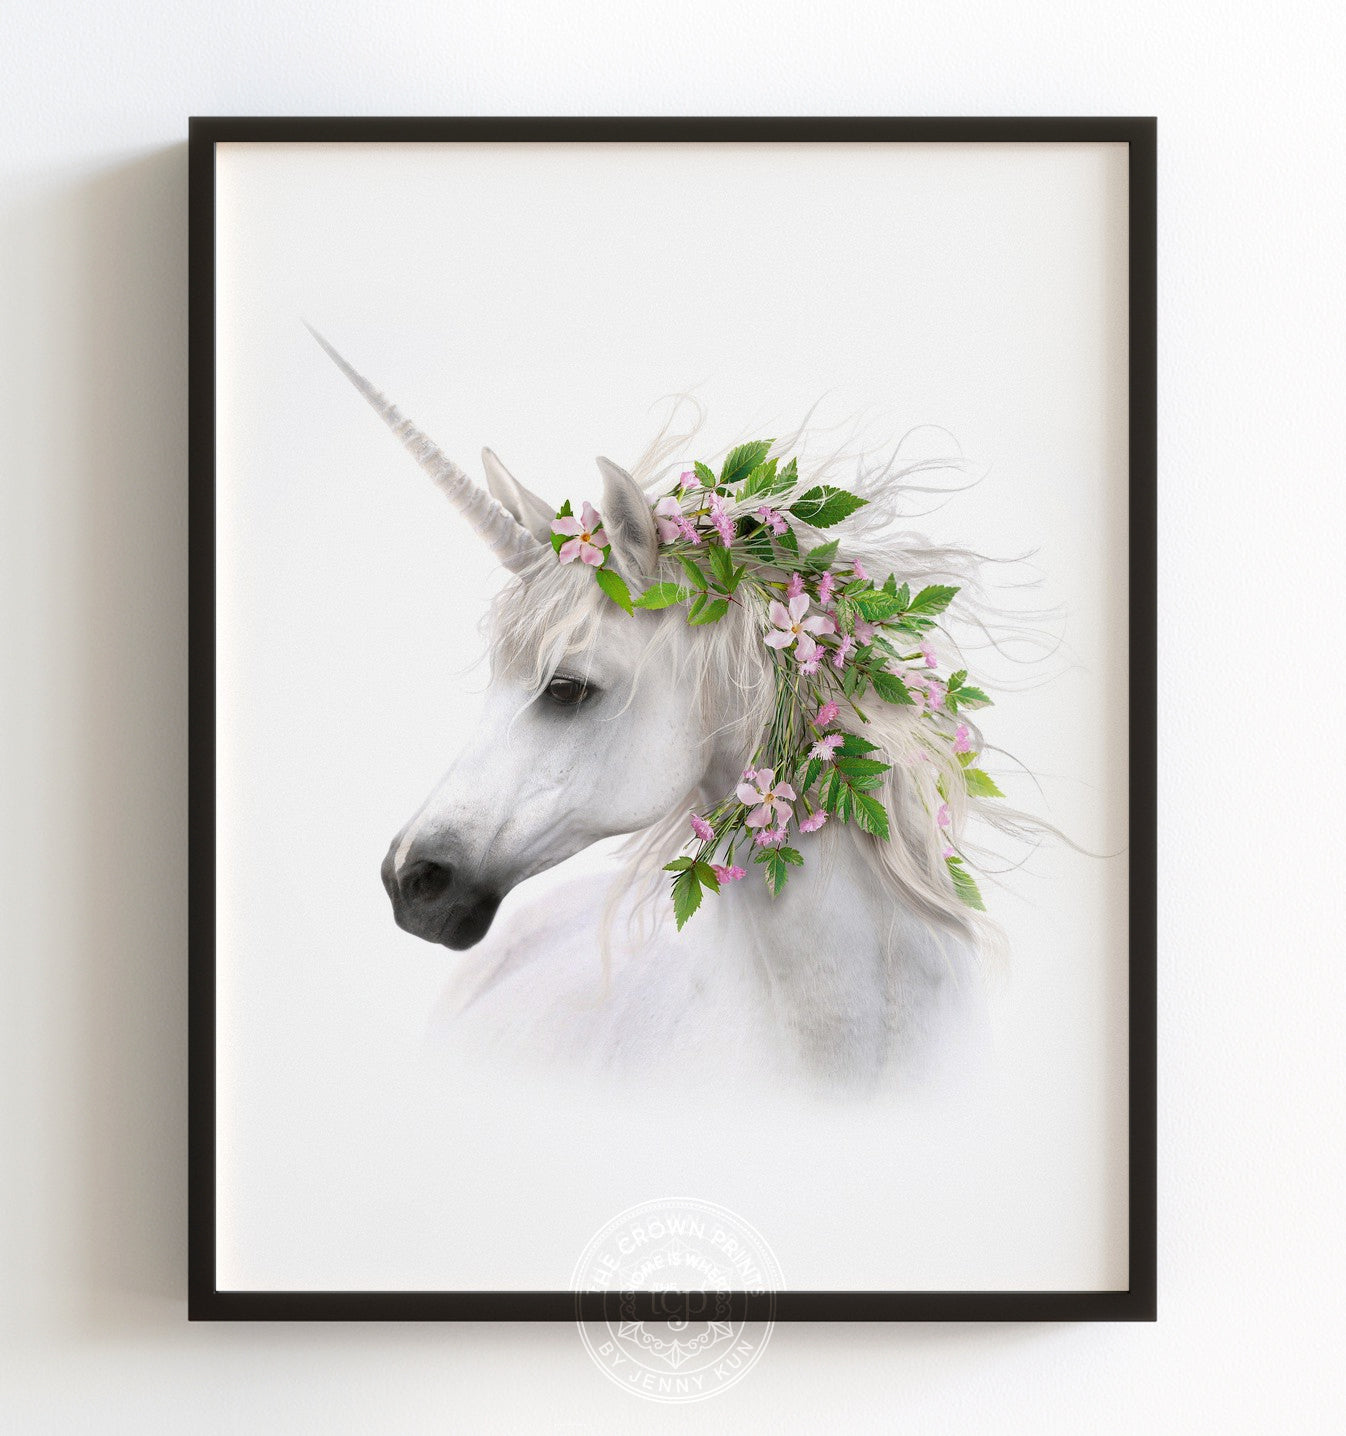 Unicorn with Flower Crown Vignette Printable Art